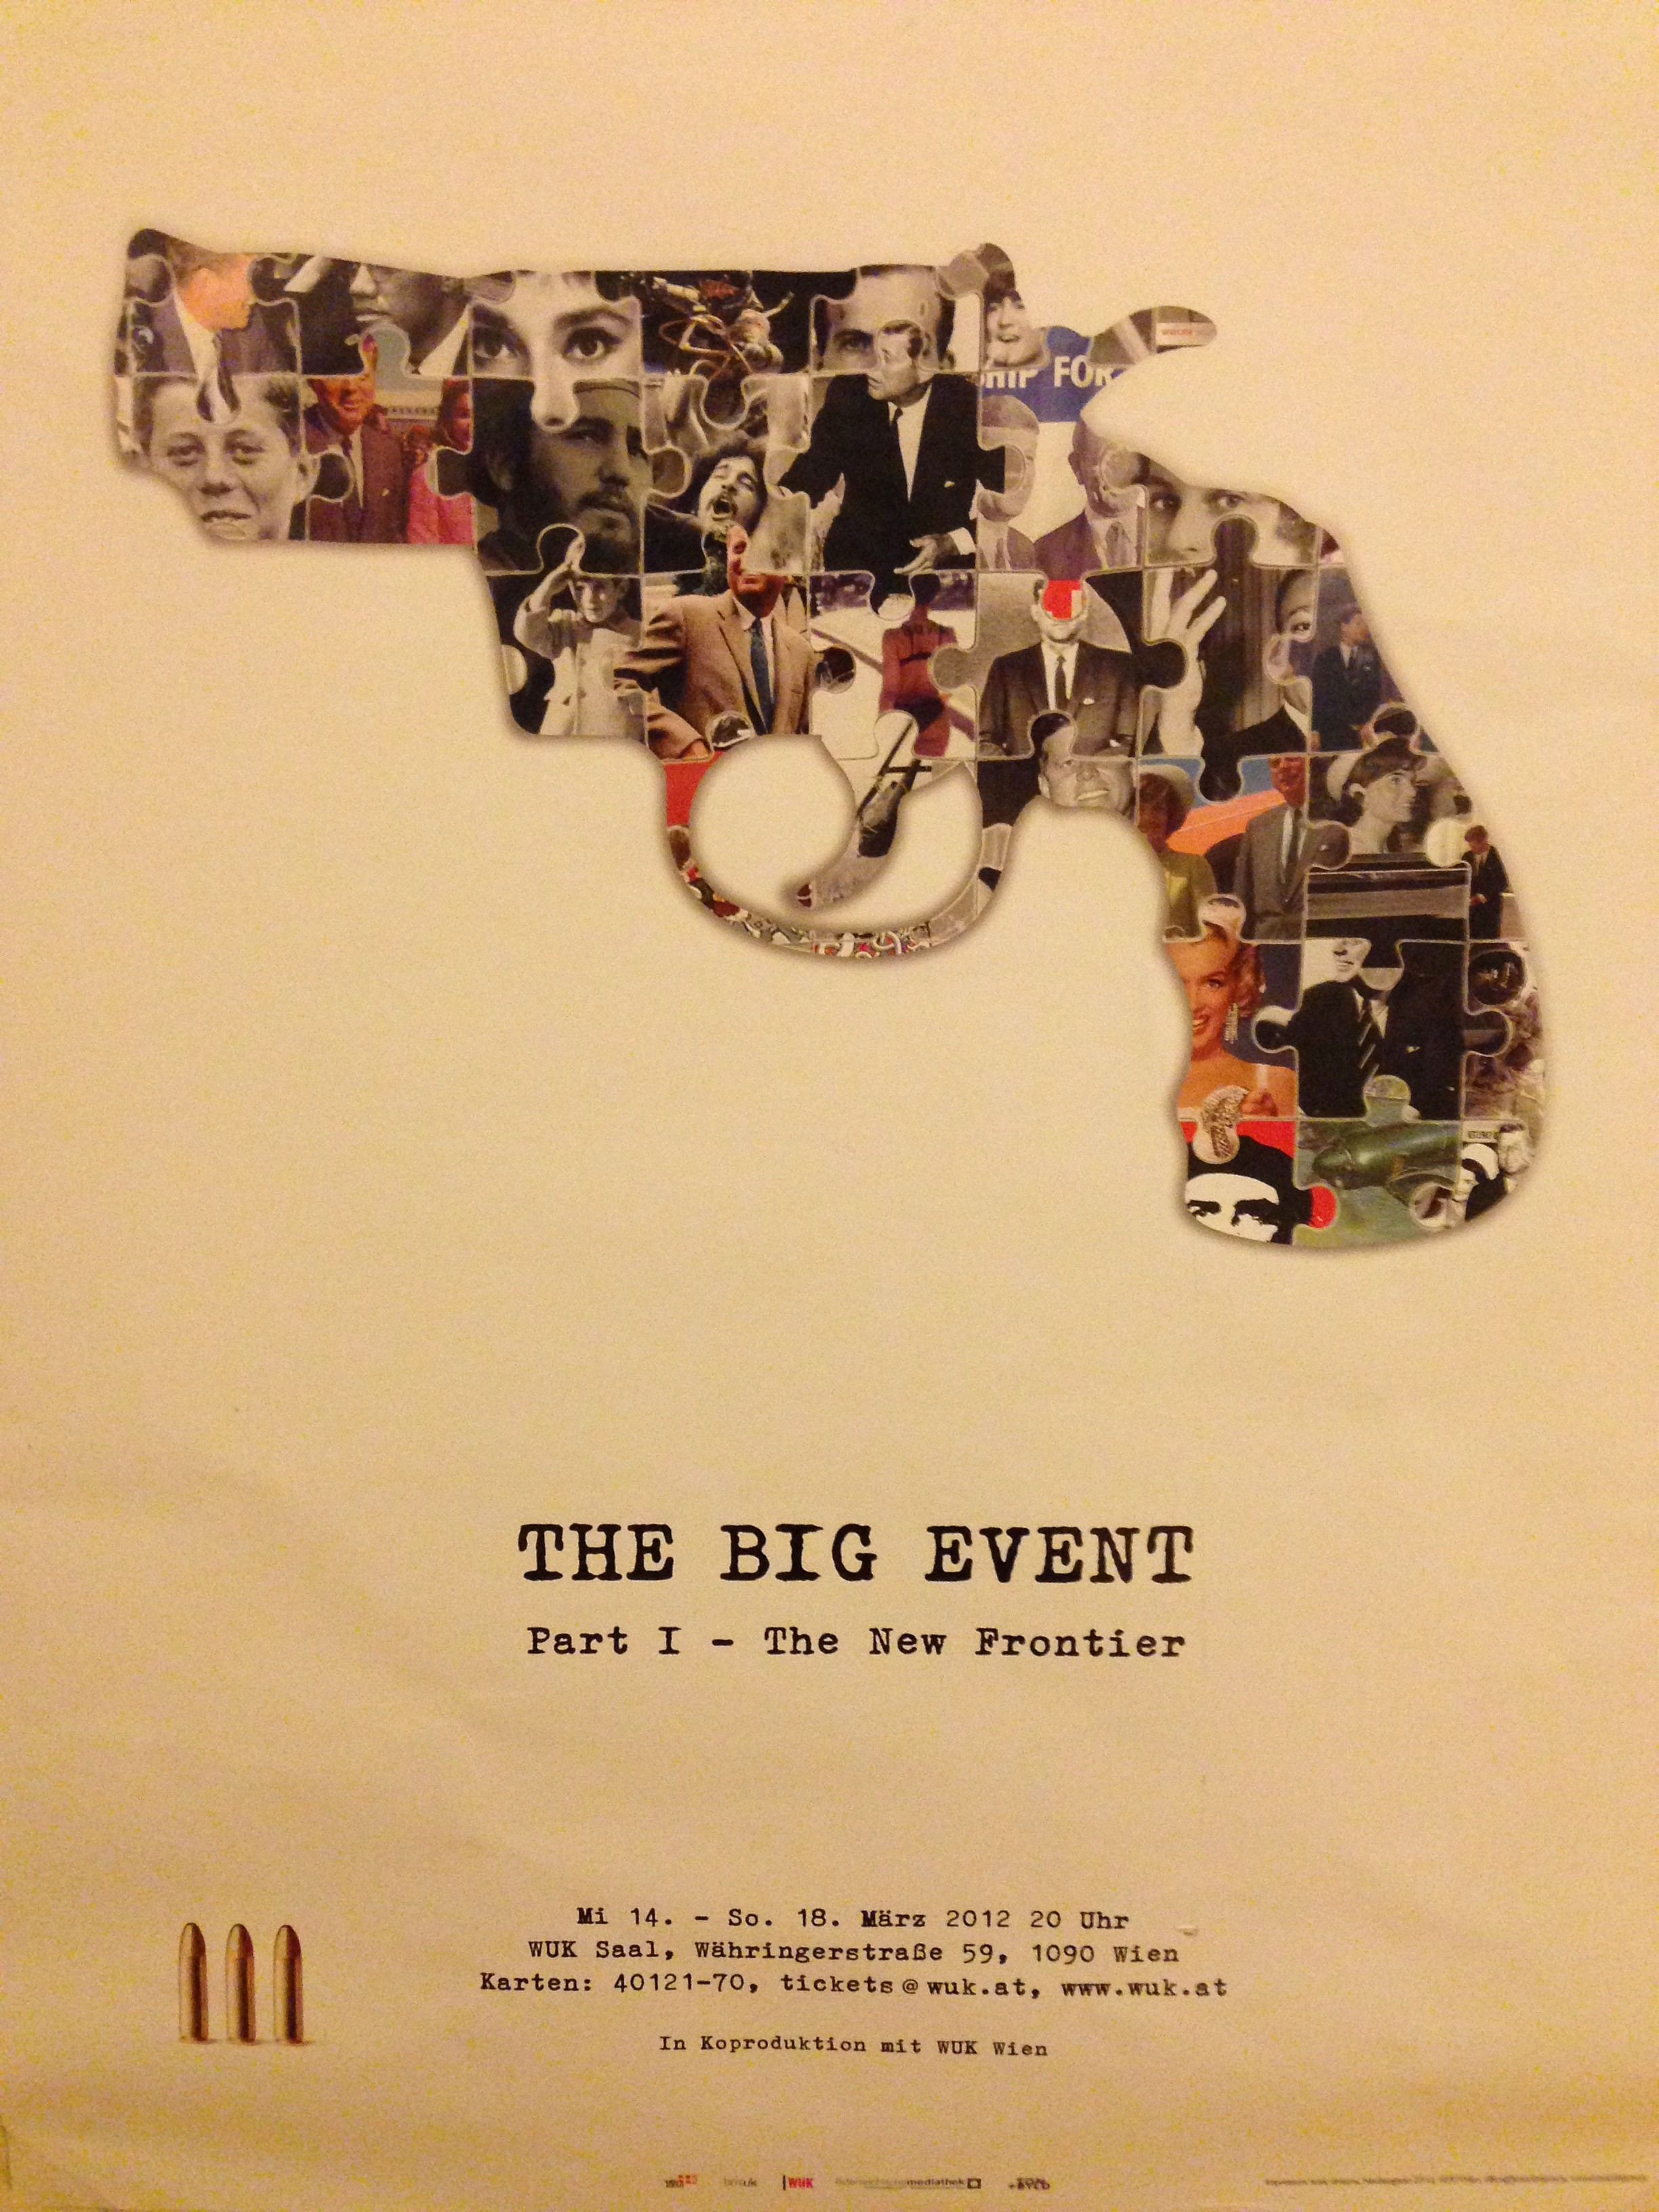 The Big Event 1 – 3 Peter Stamer